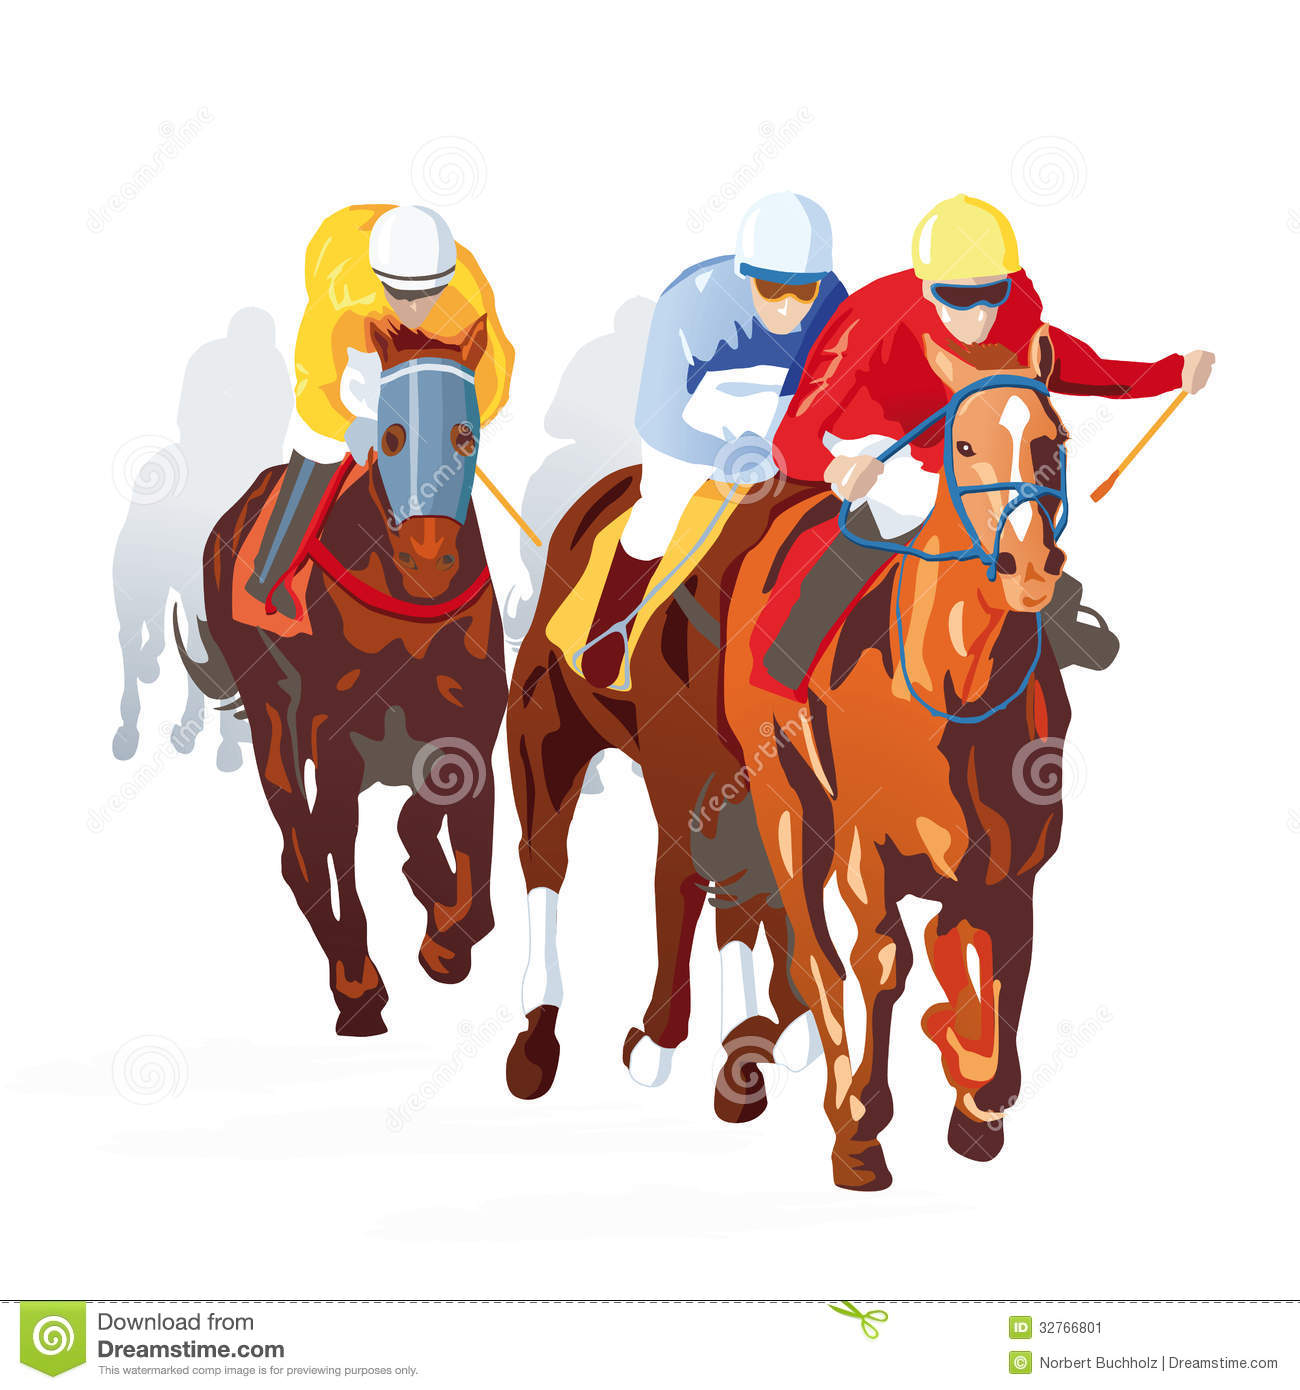 Illustration of jockeys riding horses in race, white background.